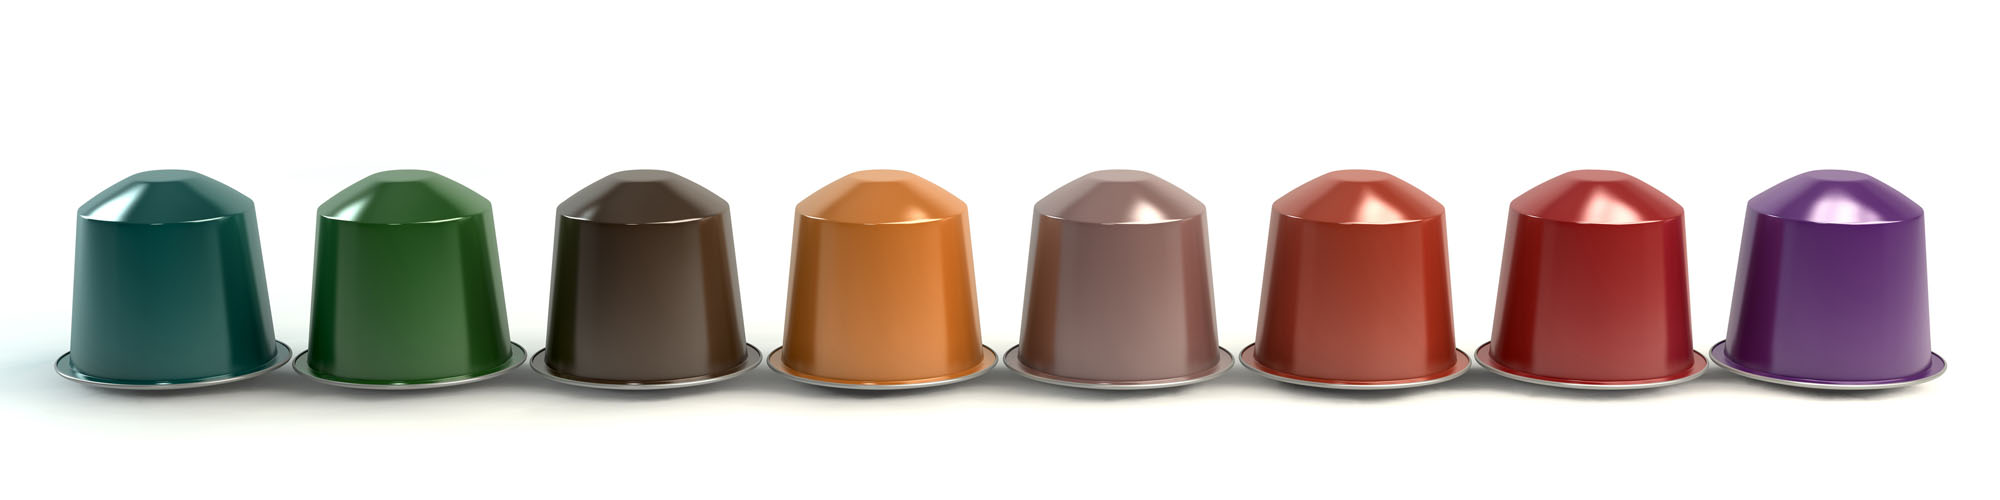 Are Single-Serve Coffee Pods Recyclable? The Answer Might Surprise You…